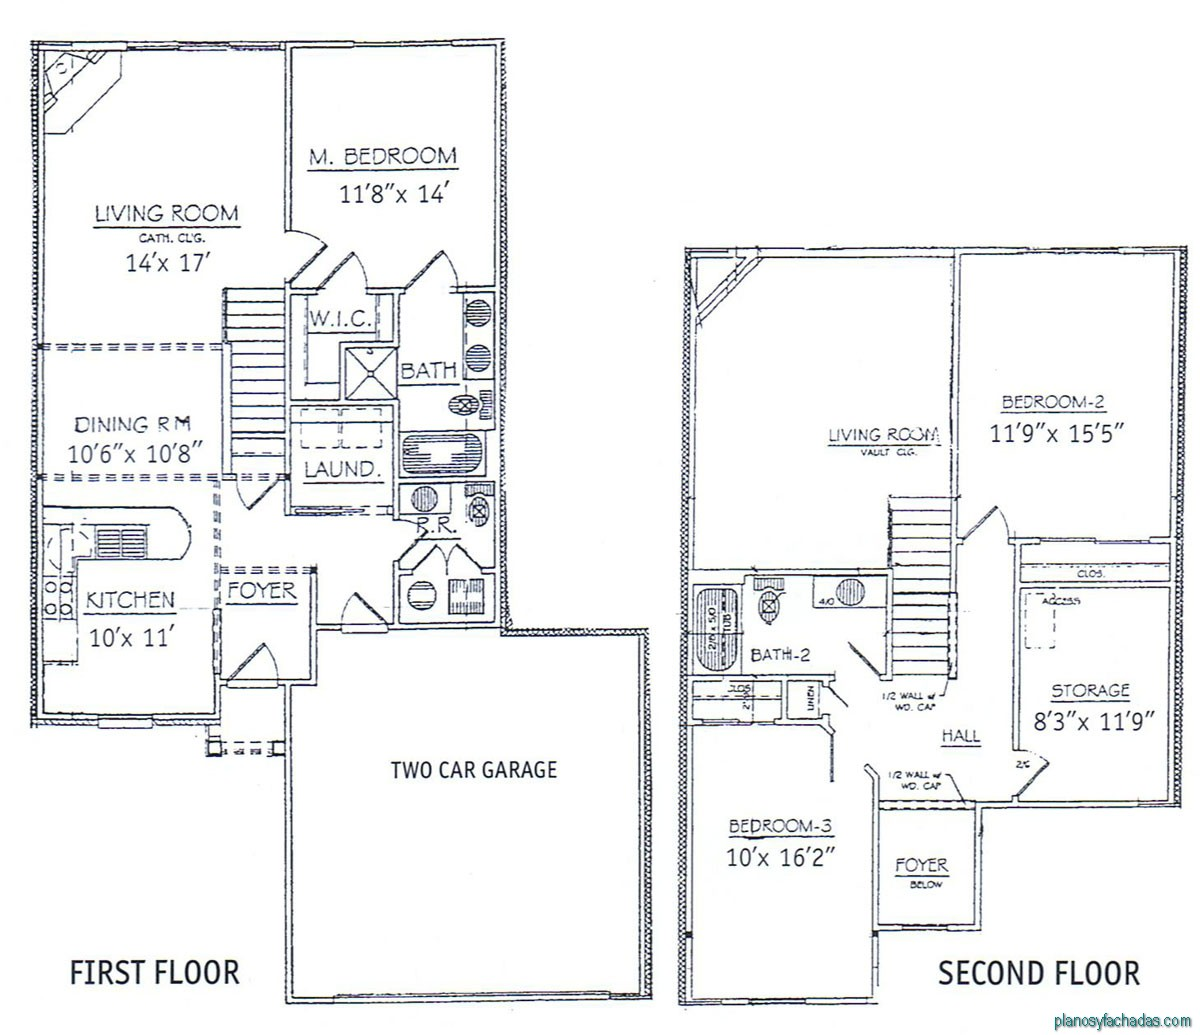 Plan details also Plan details as well House Plans Greenwood Indiana as well Measurements besides 88xt824. on 2 story triplex plans